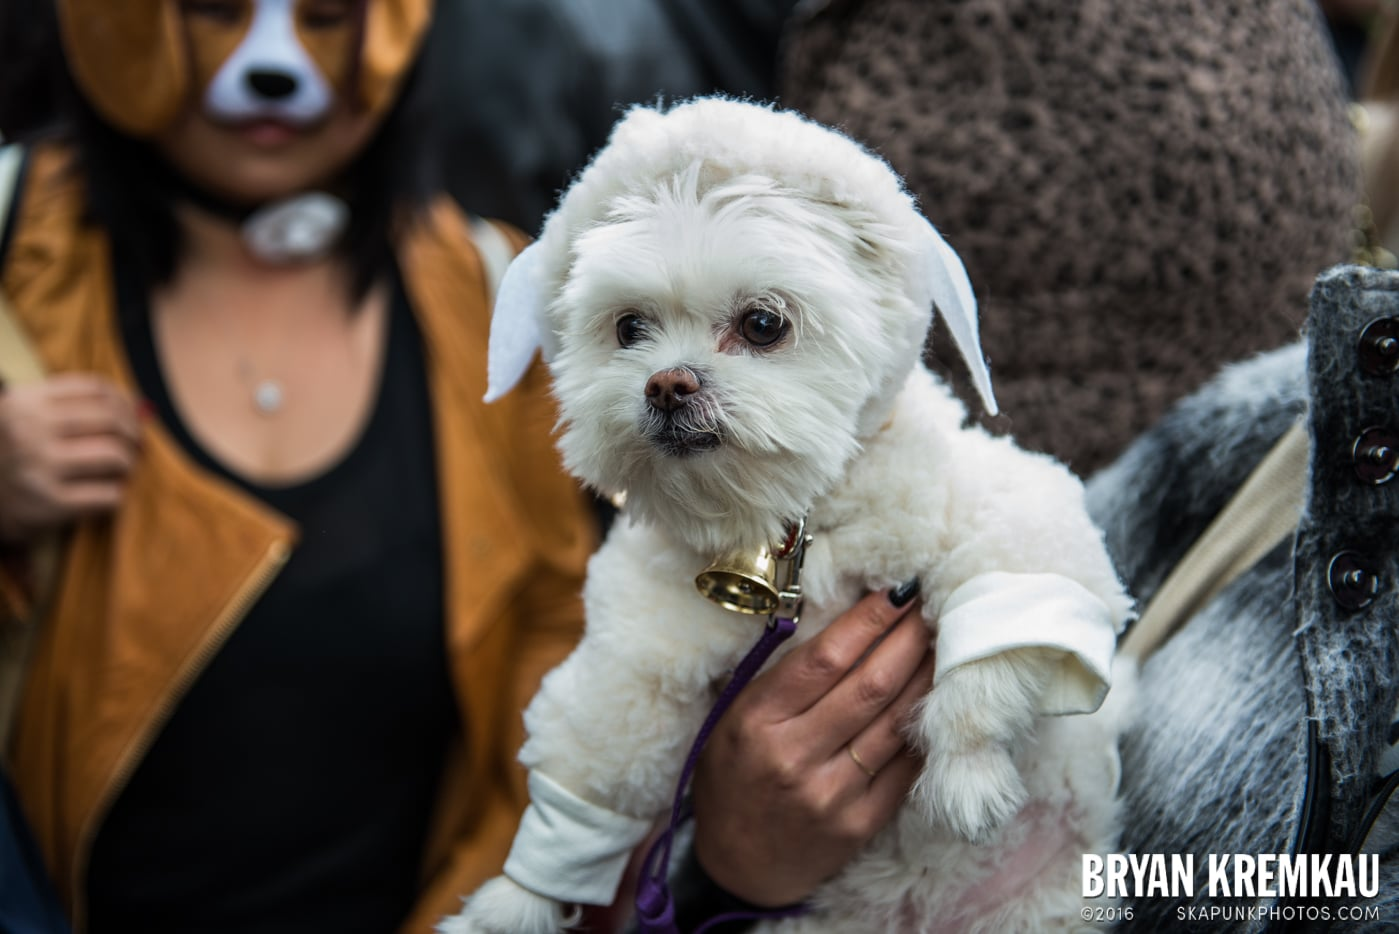 Tompkins Square Halloween Dog Parade 2015 @ Tompkins Square Park, NYC – 10.24.15 (11)